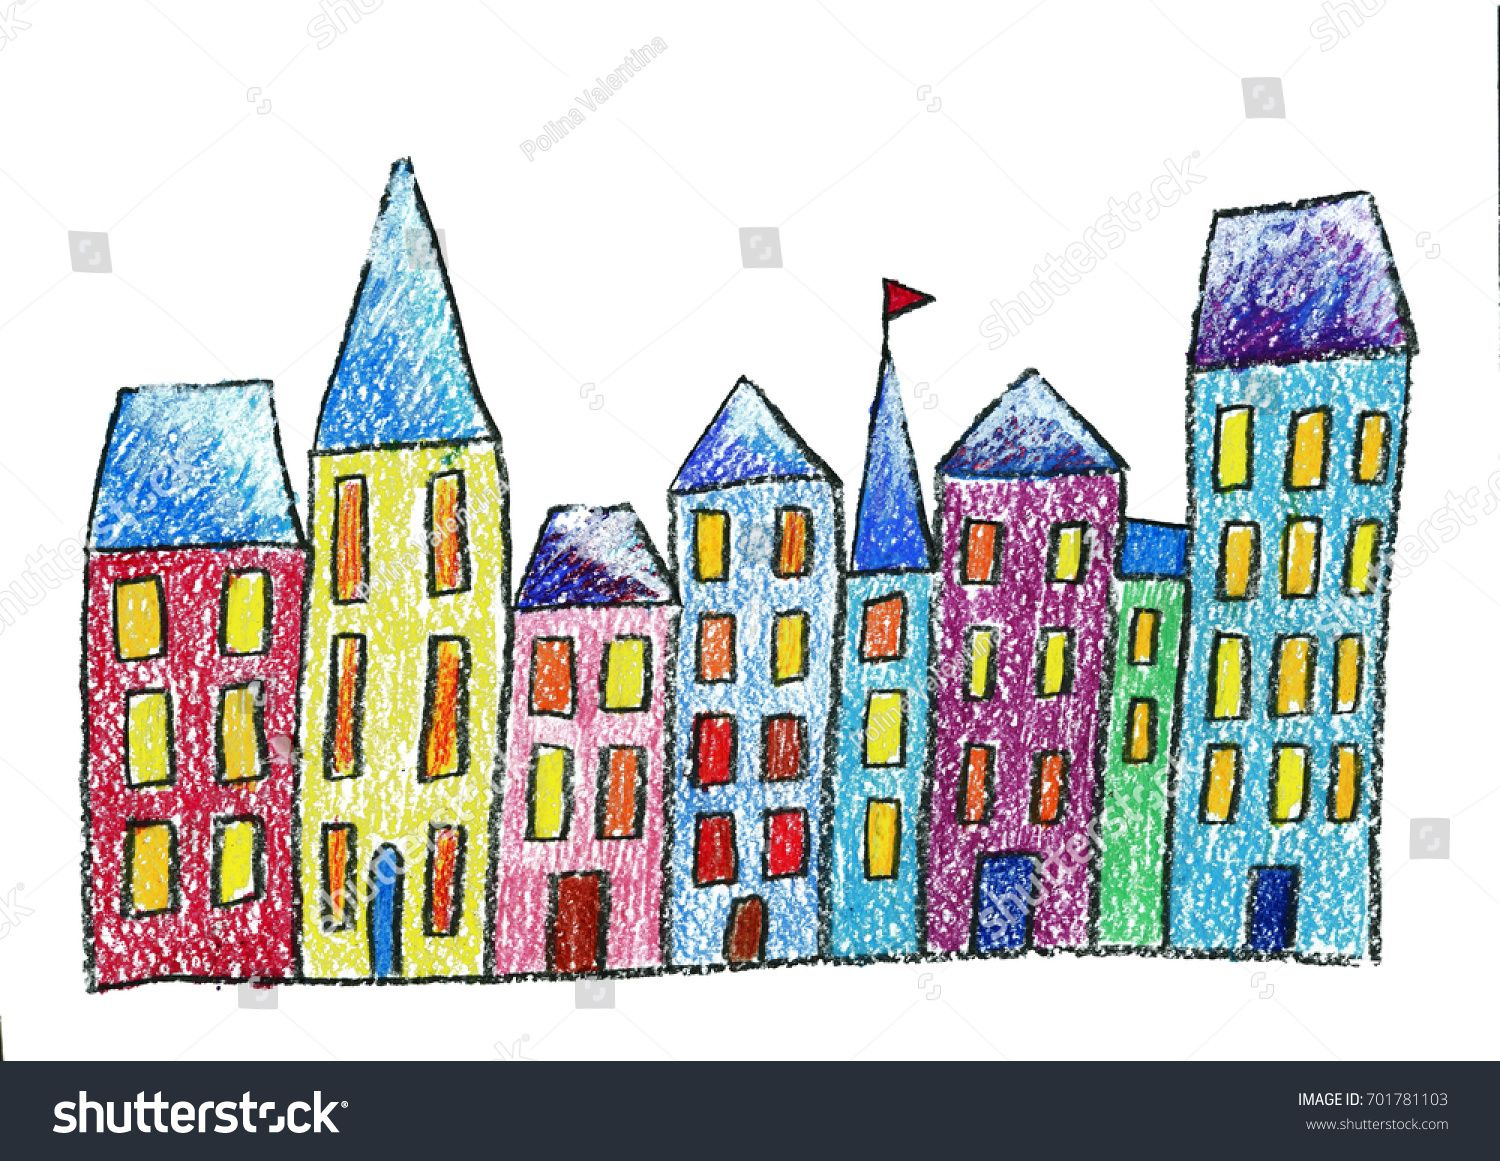 Old Town Old City Christmas City Kids Drawing Style Children Drawing Sponsored Christmas City Town Kids Drawing For Kids City Kid Fashion Drawing